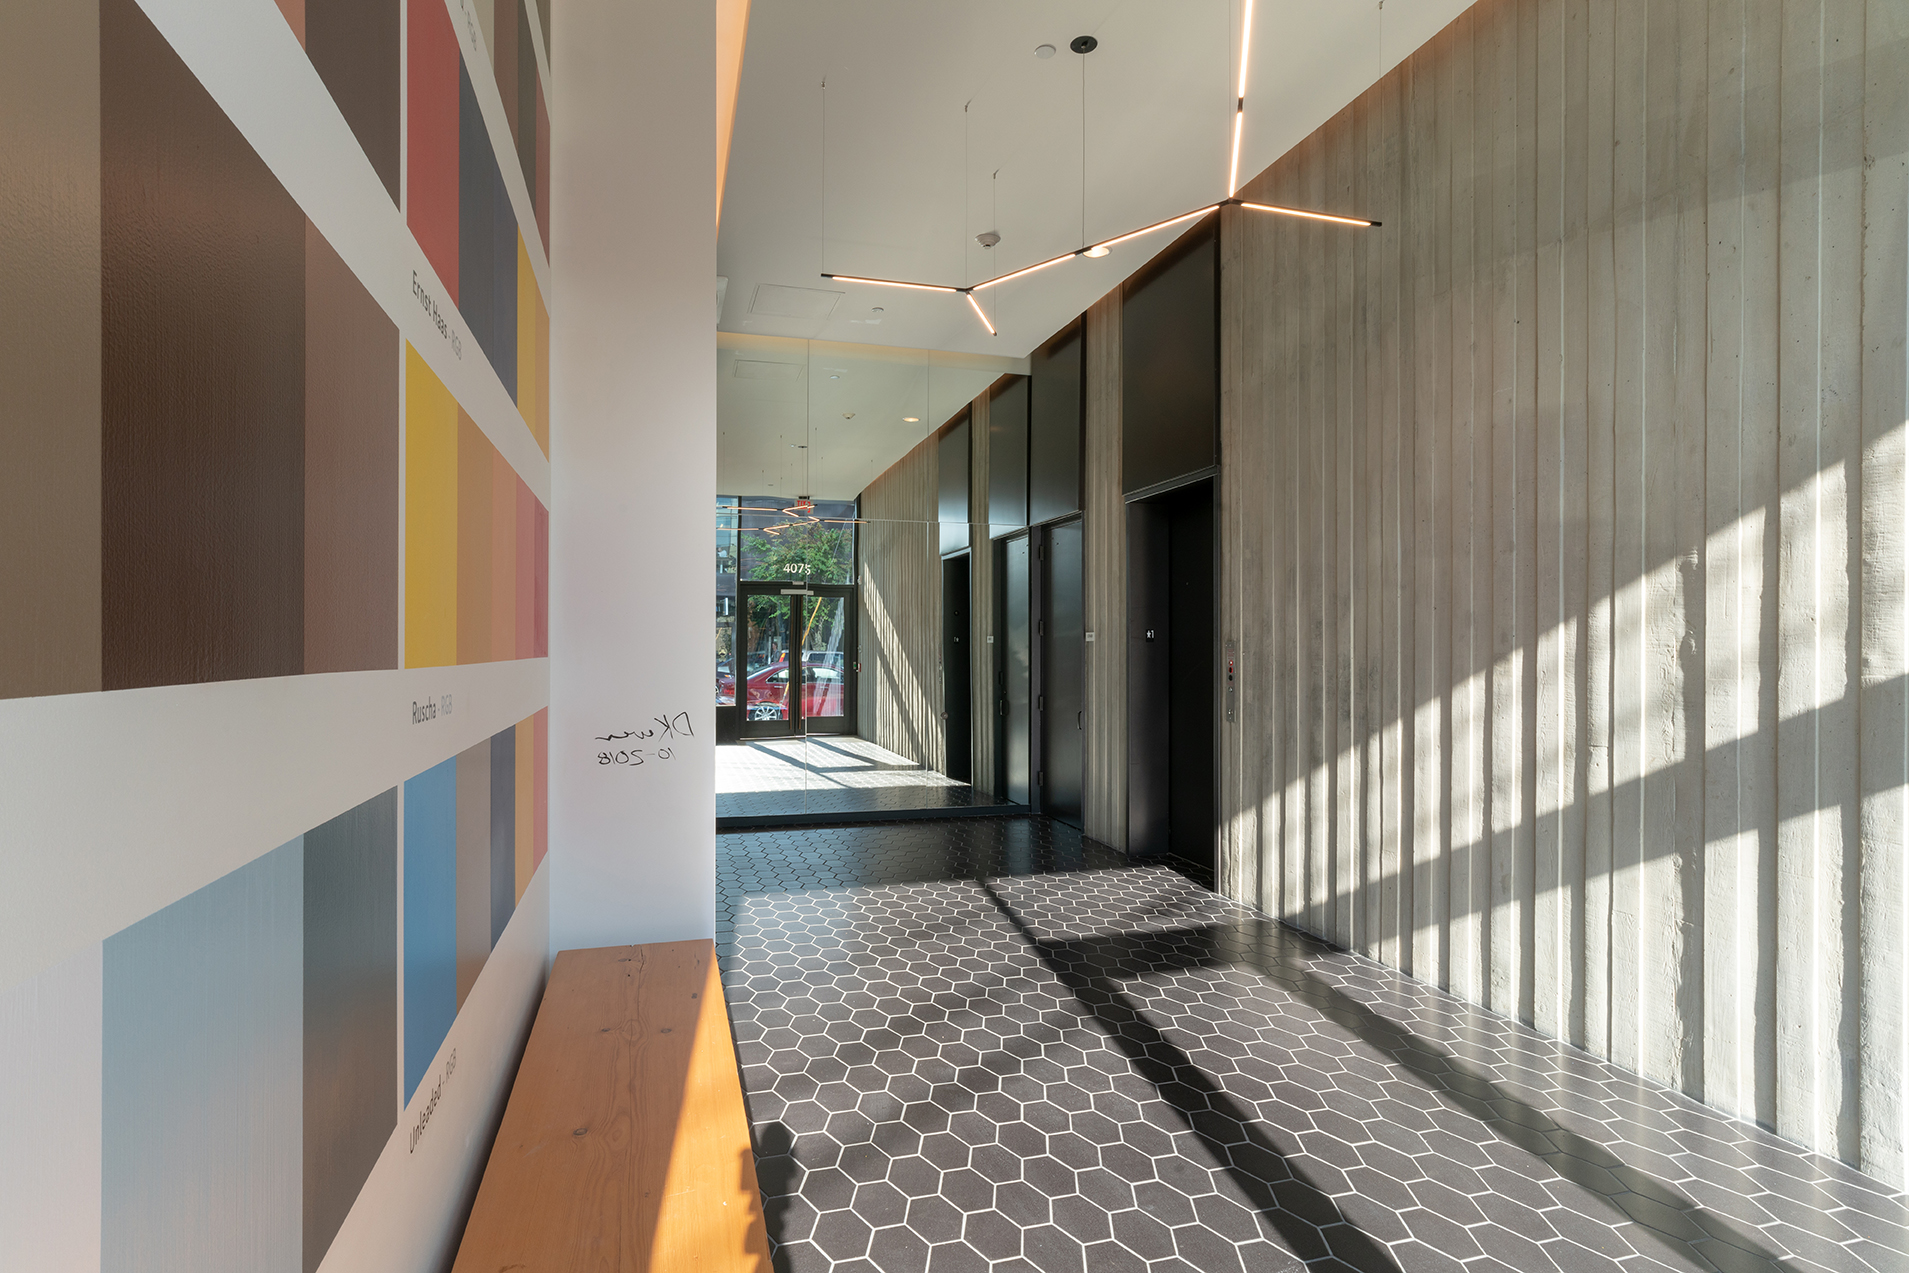 The lobby of the Silica building featuring William / Kaven Architecture partner Daniel Kaven's mural,  Architecture of Normal.